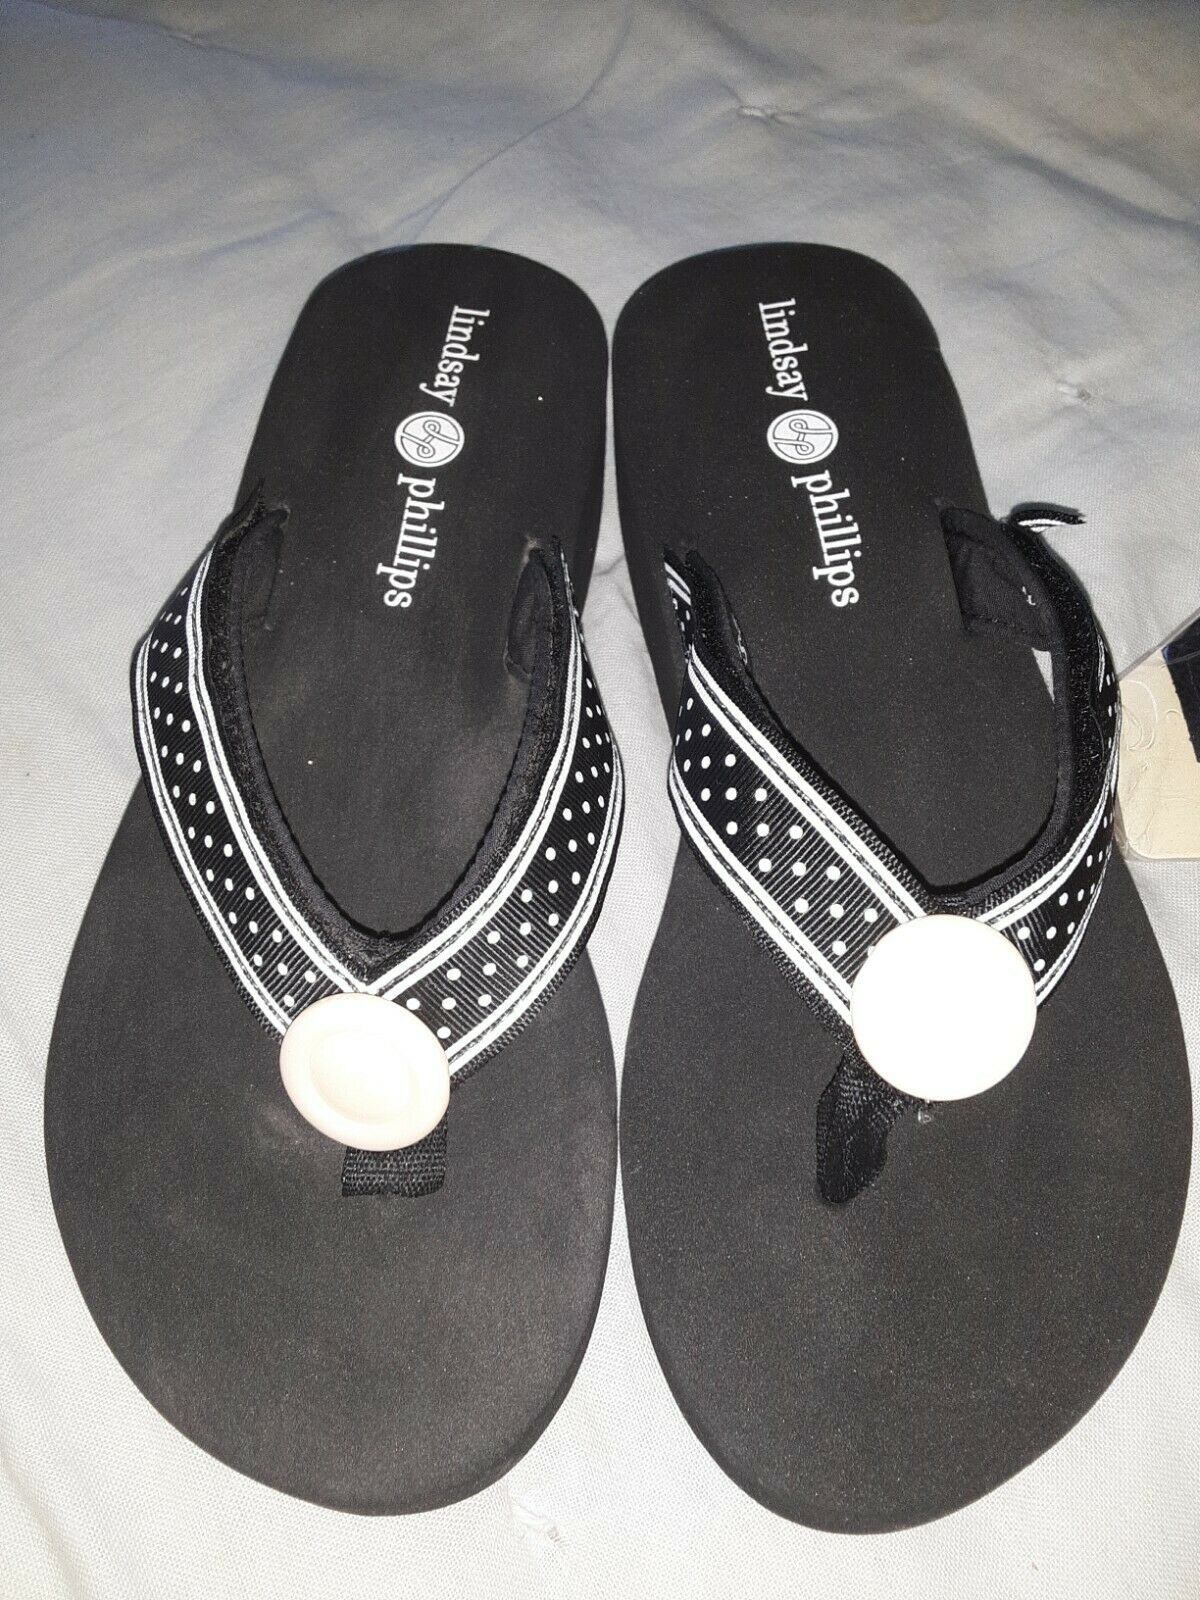 Lindsay Phillips Switchflops Black, 6, with 4 different colored straps